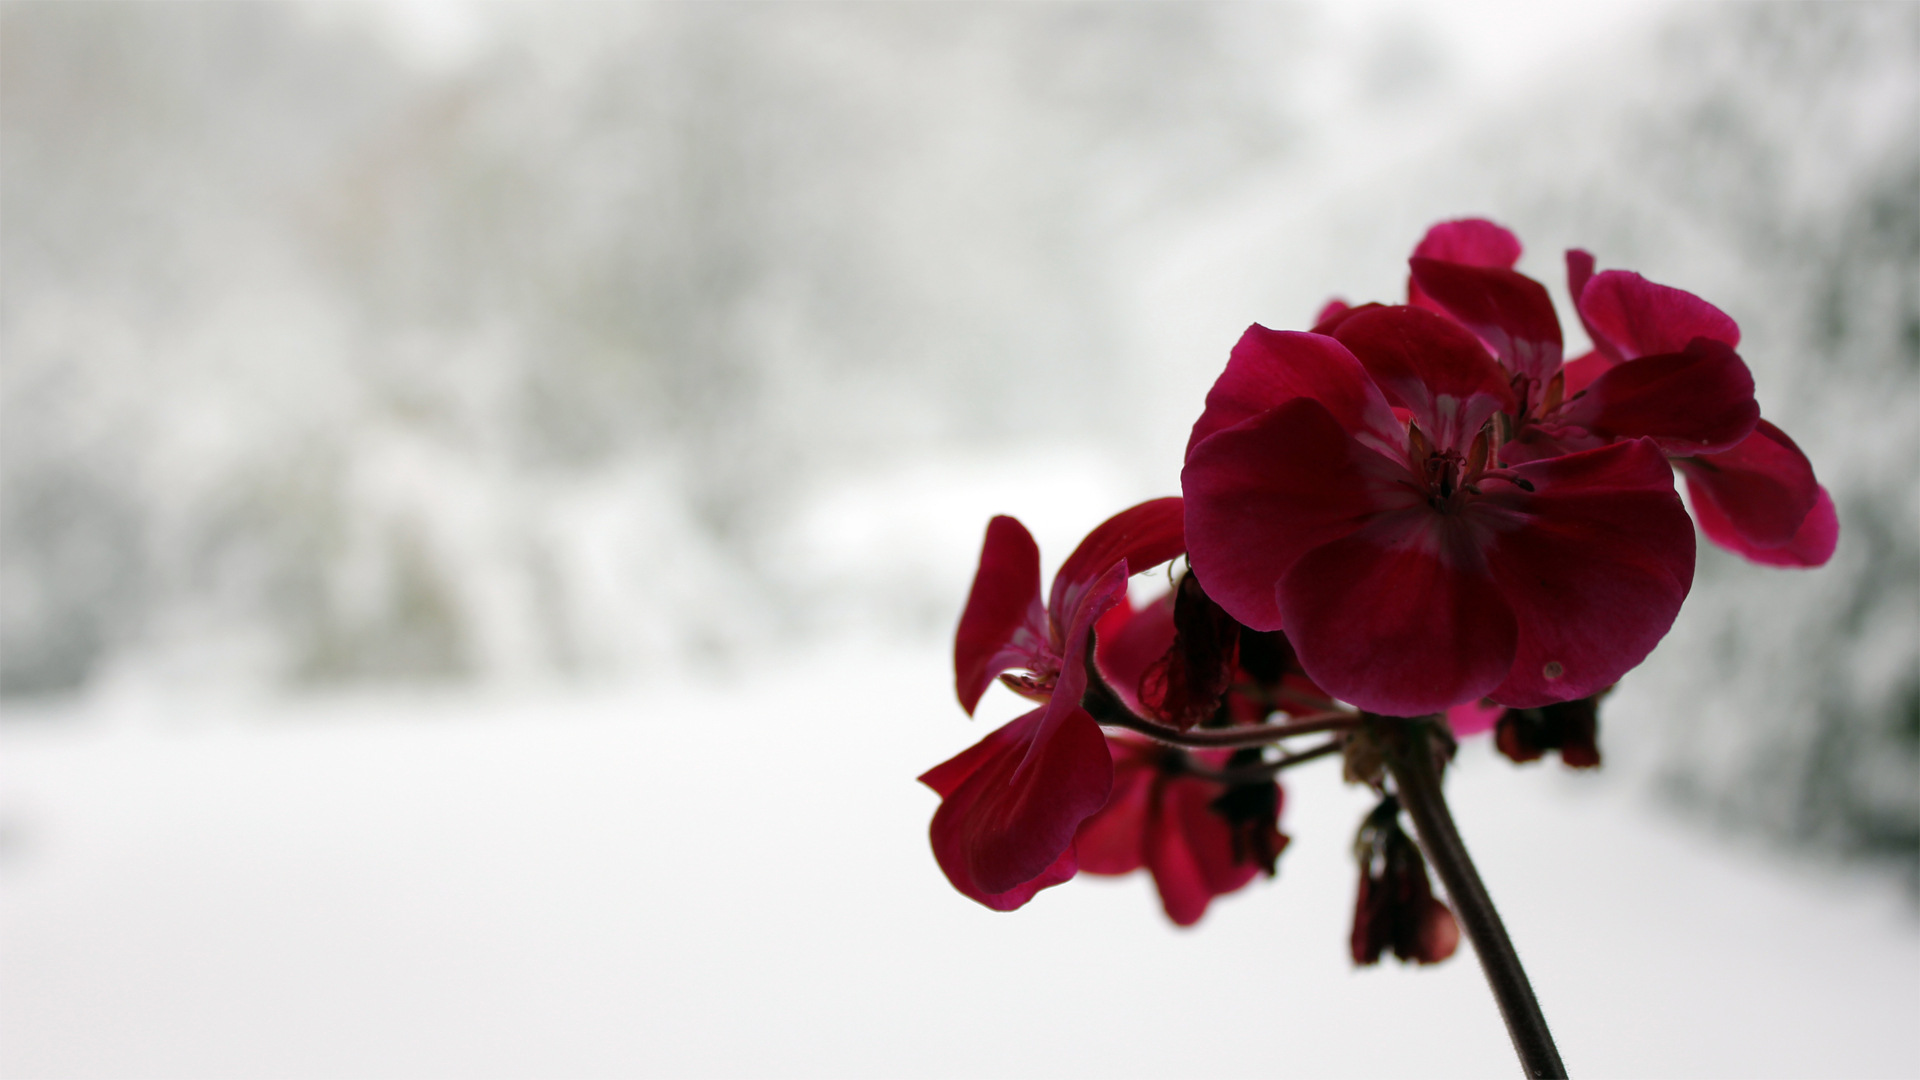 Cute Cartoon Love Wallpaper Free Download Dark Red Orchid On A Wonderful Winter Background